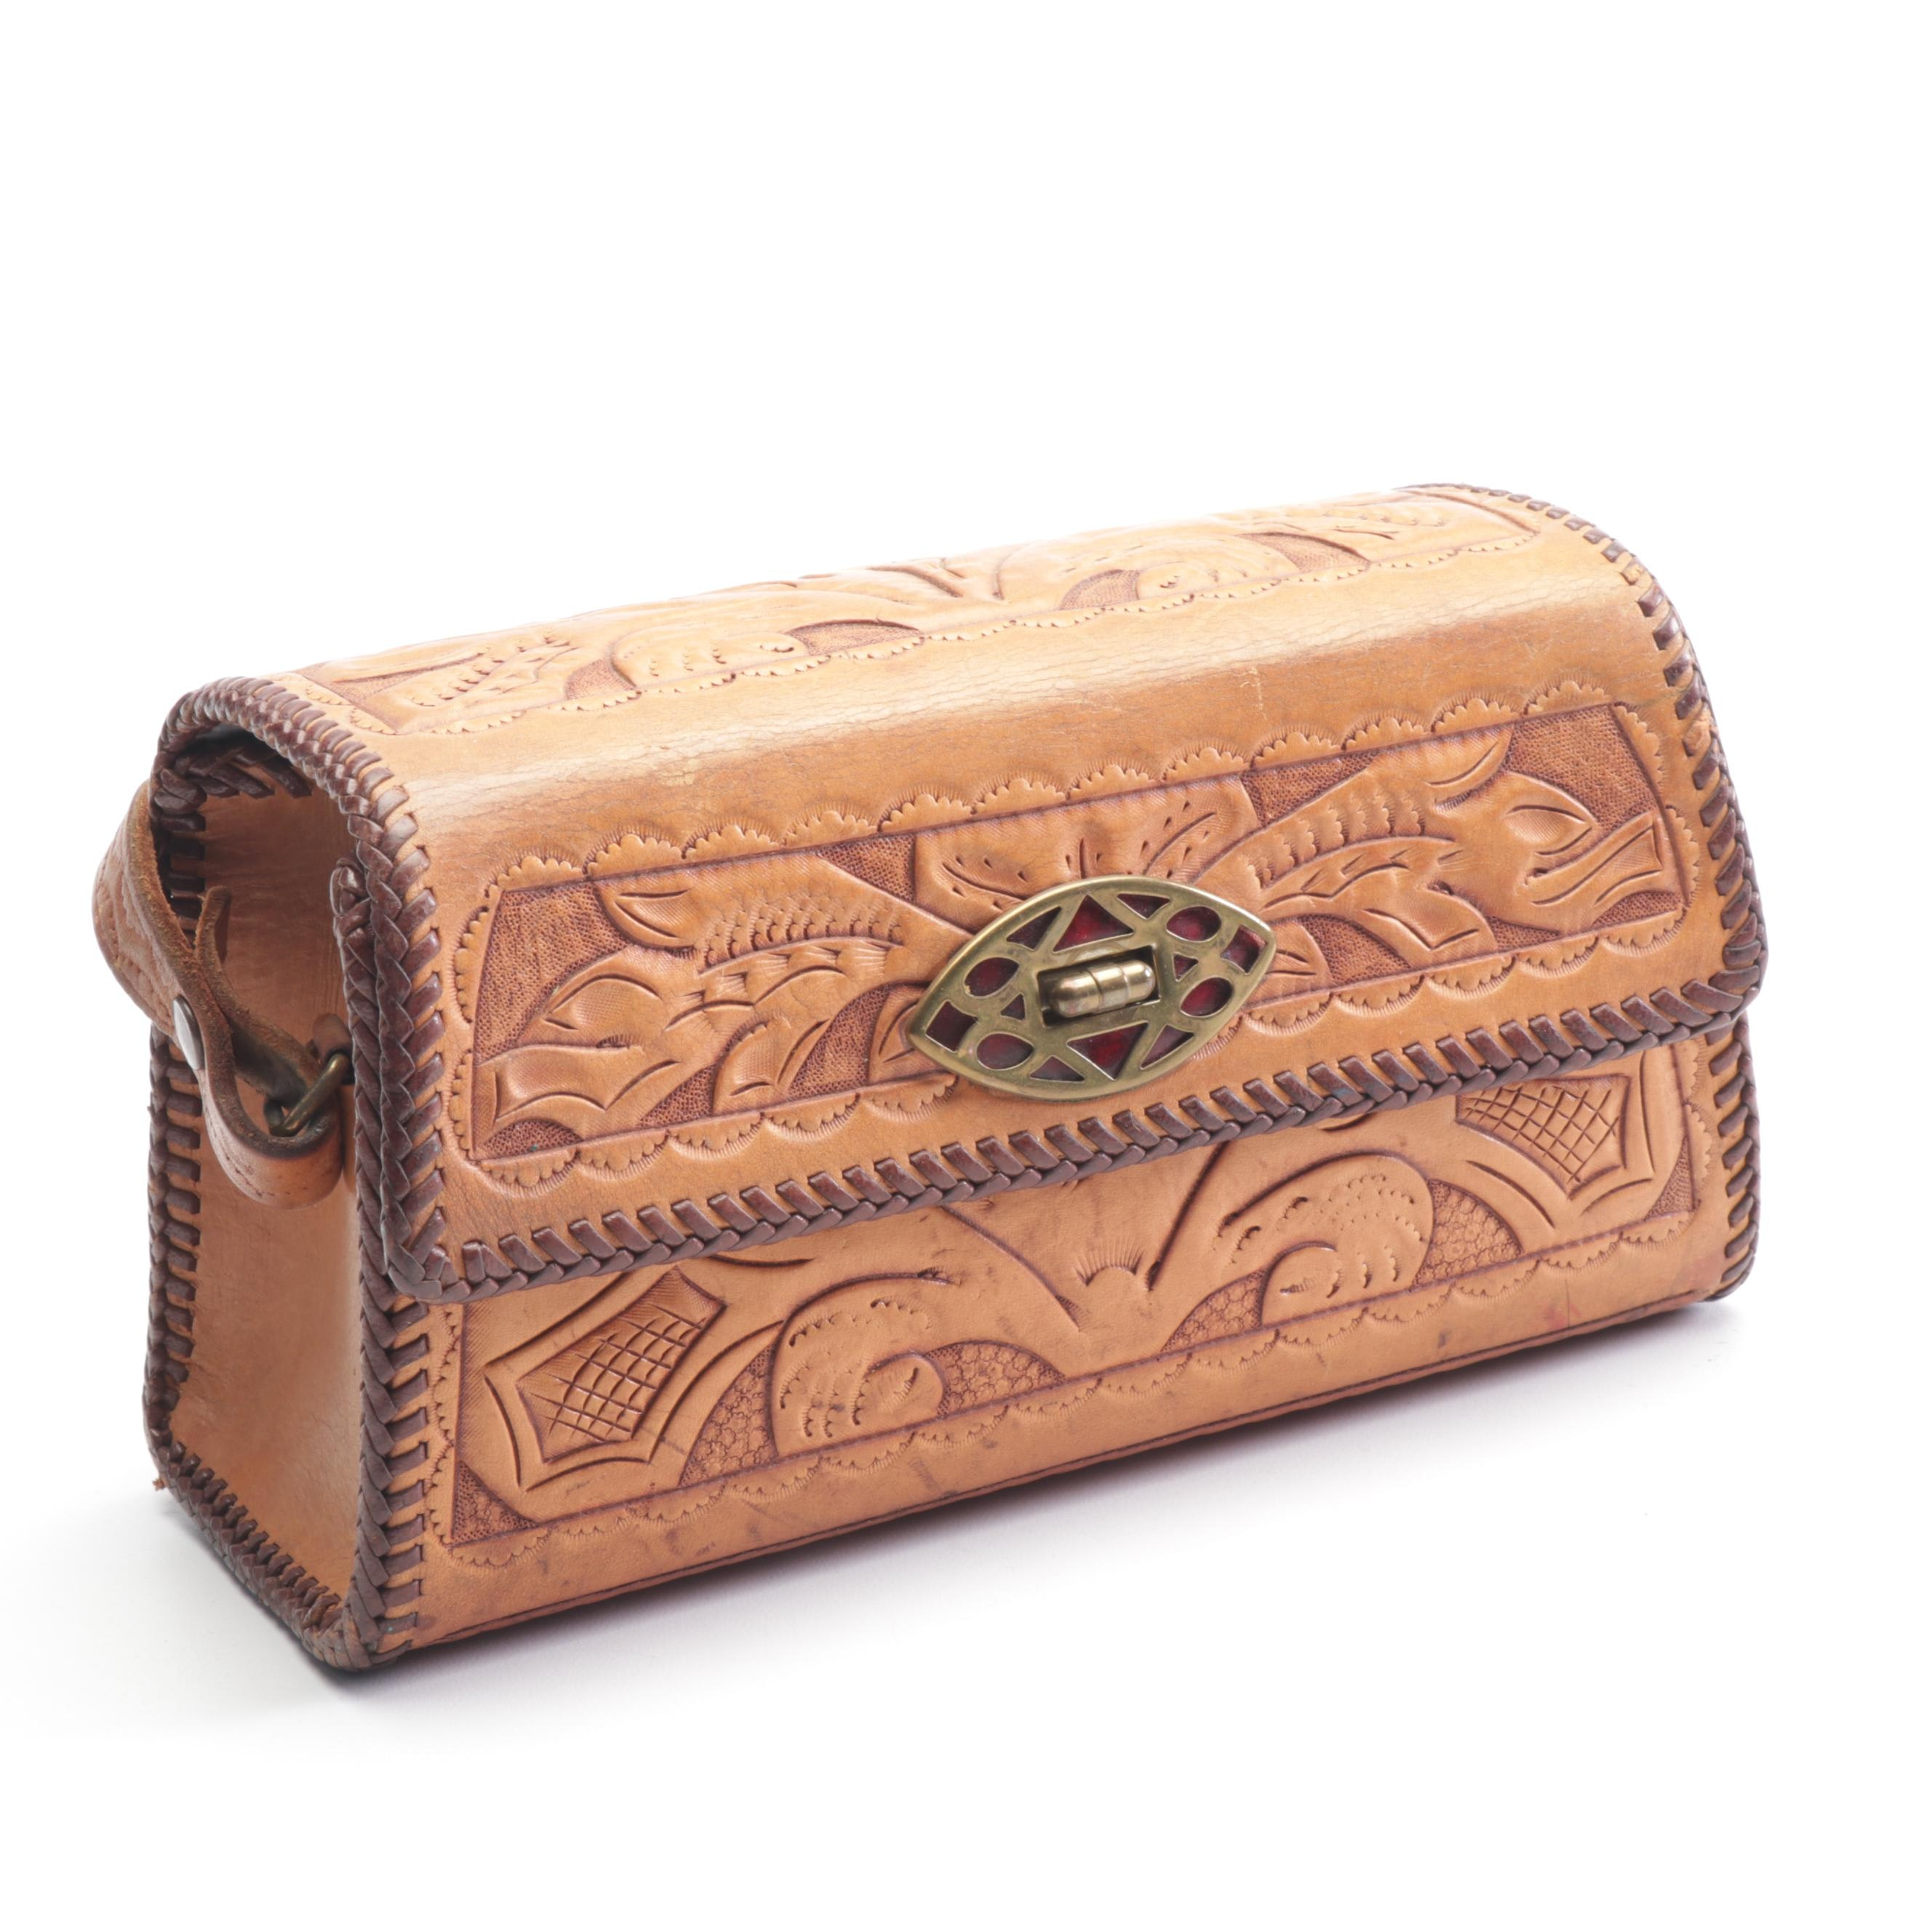 Tooled Leather Purse with Suede Lining and Pocket Mirror, Vintage